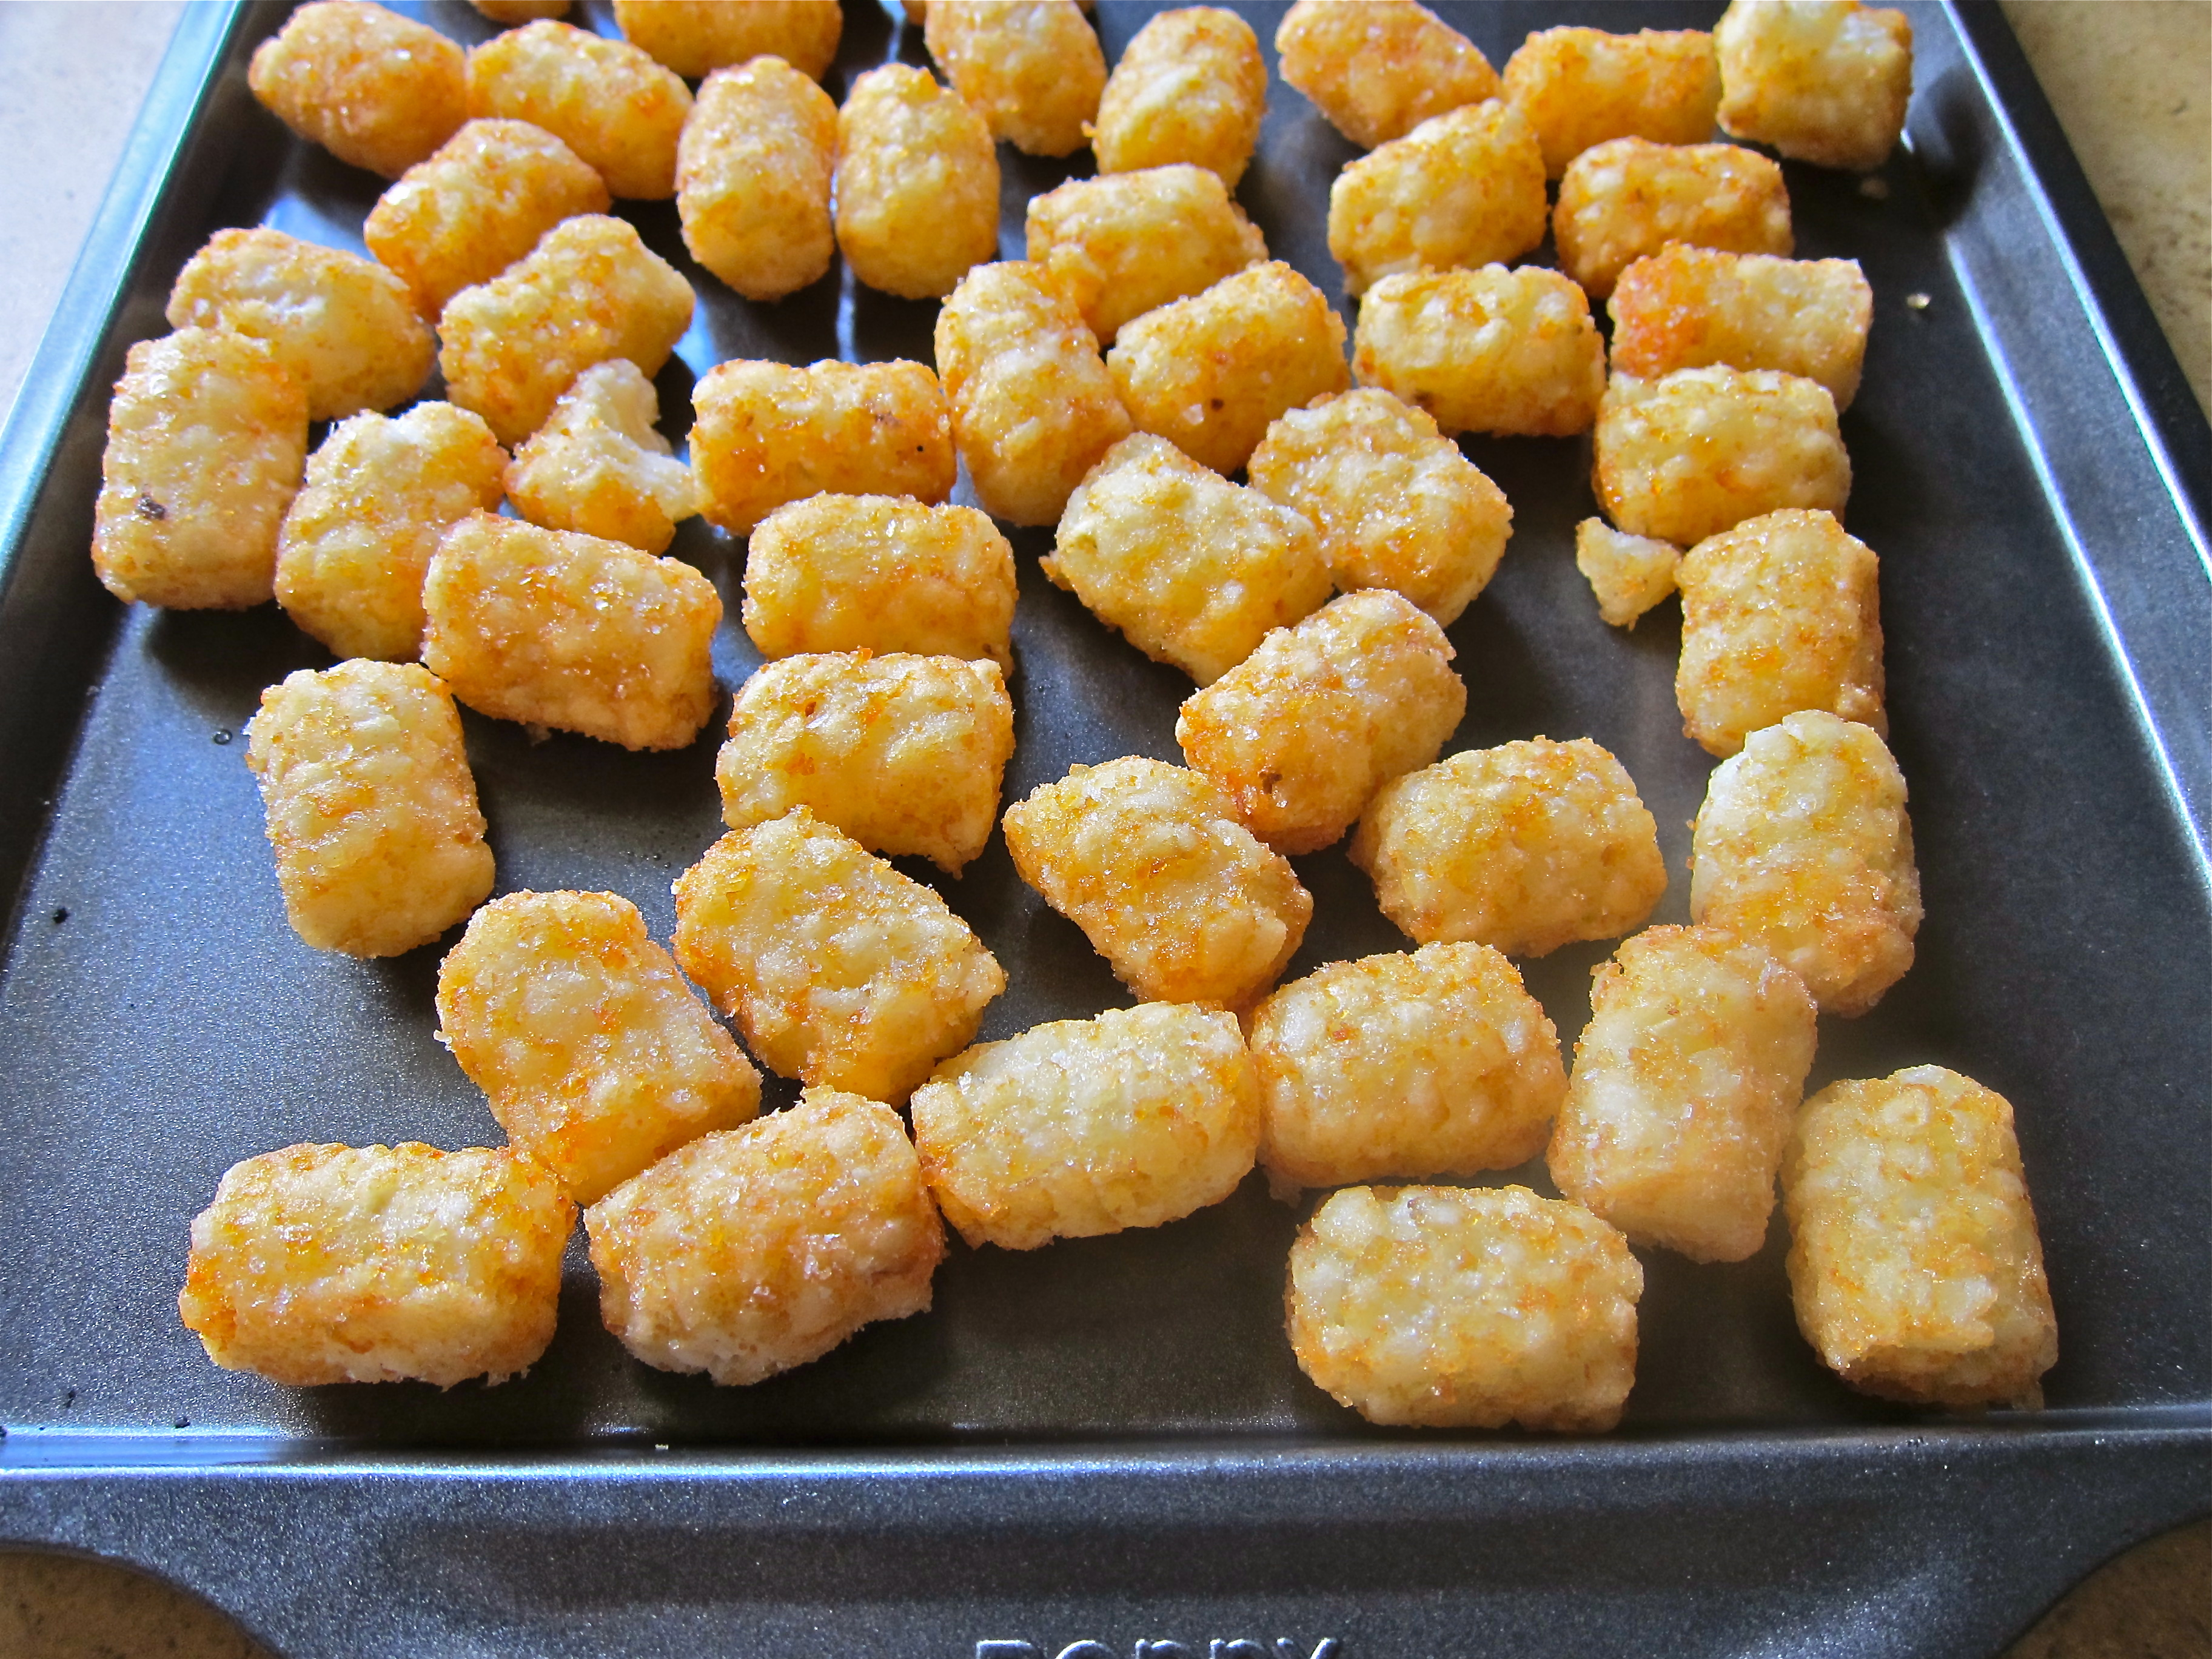 Throw half a bag of frozen hash browns (tater tots) on a baking sheet ...